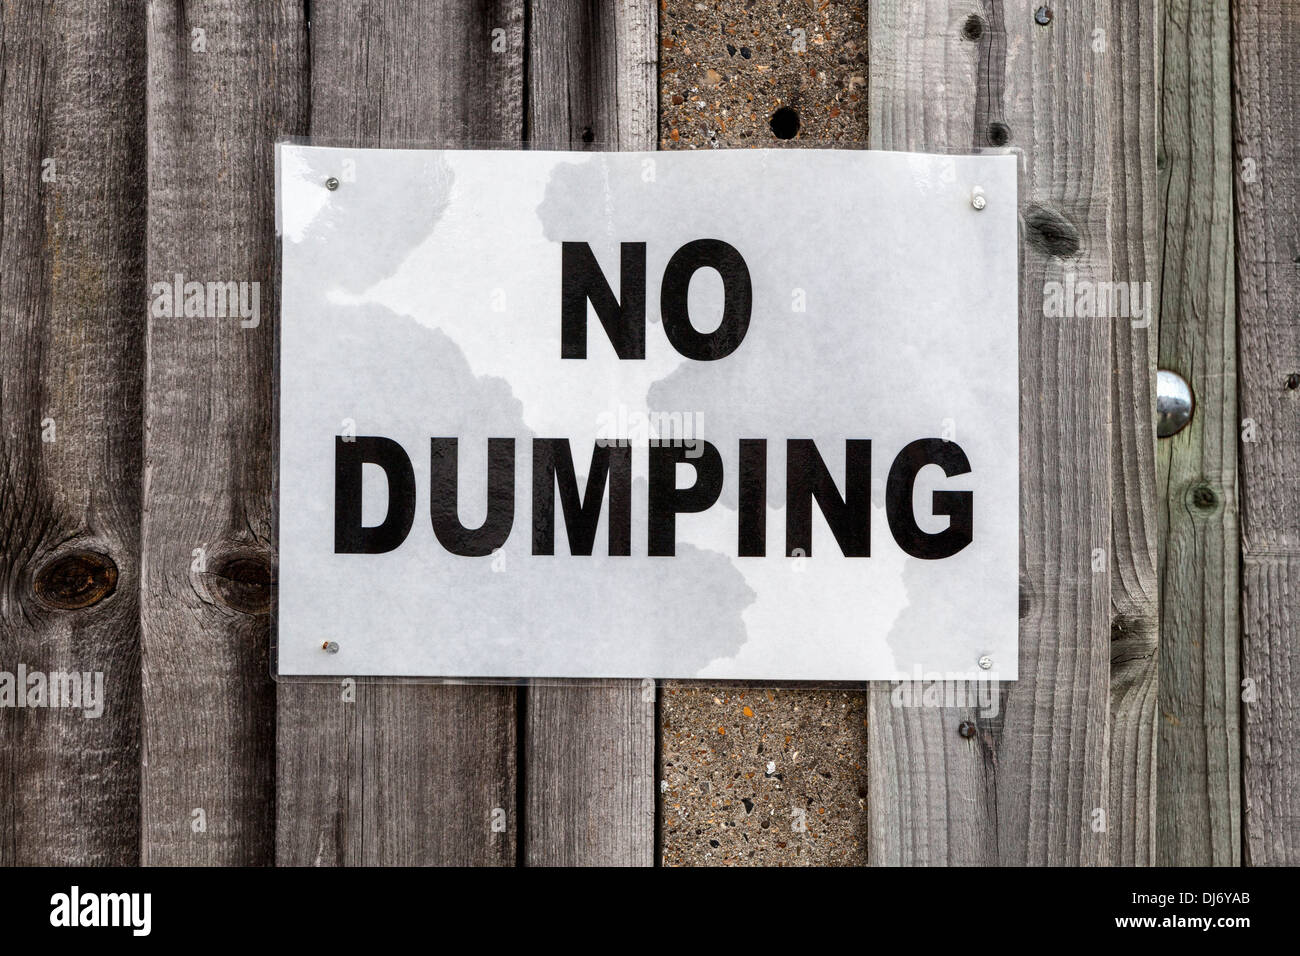 No dumping sign on a wooden fence - Stock Image